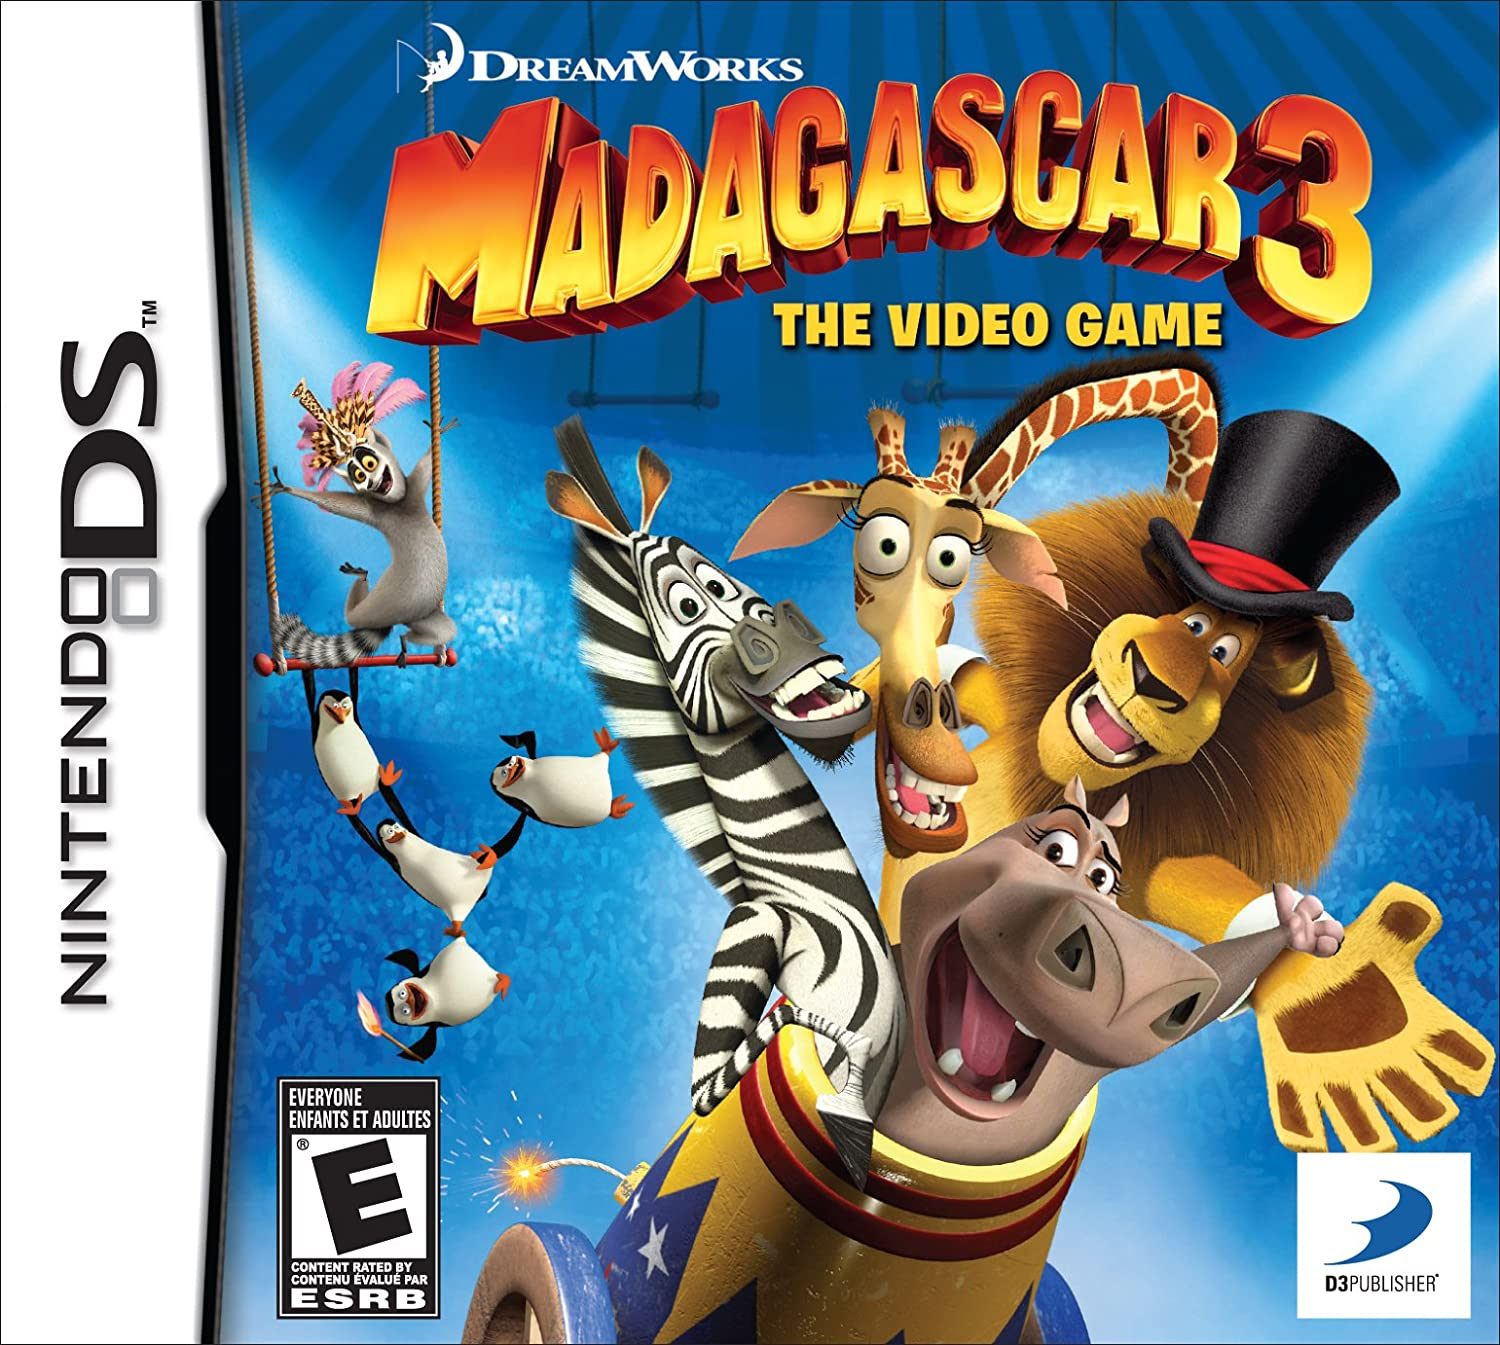 Amazoncom Madagascar 3 The Video Game Playstation 3 Video Games